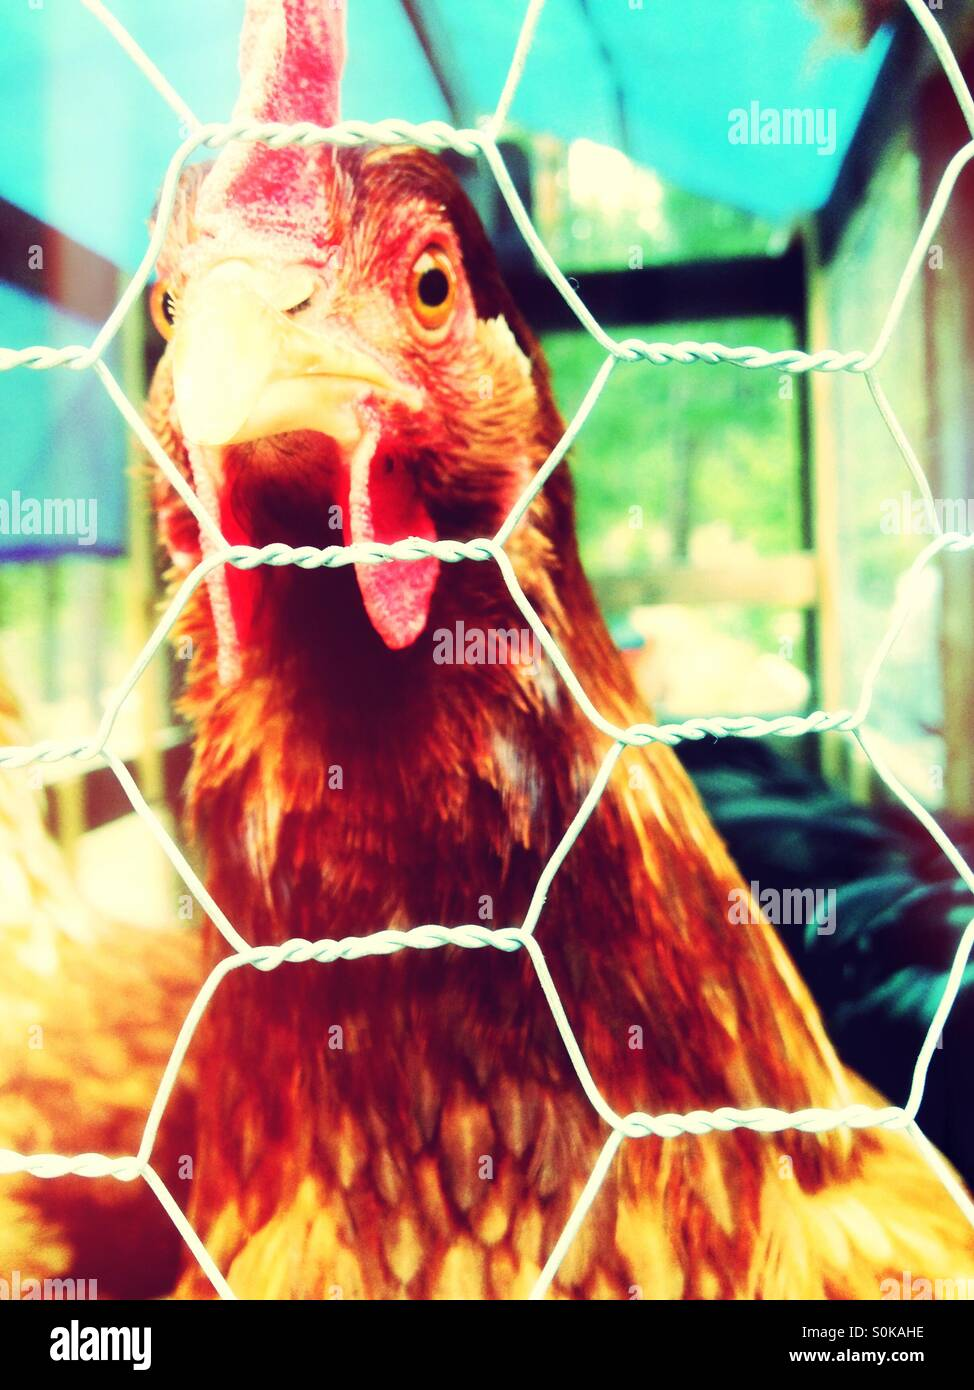 Intrigued Chicken staring at camera - Stock Image